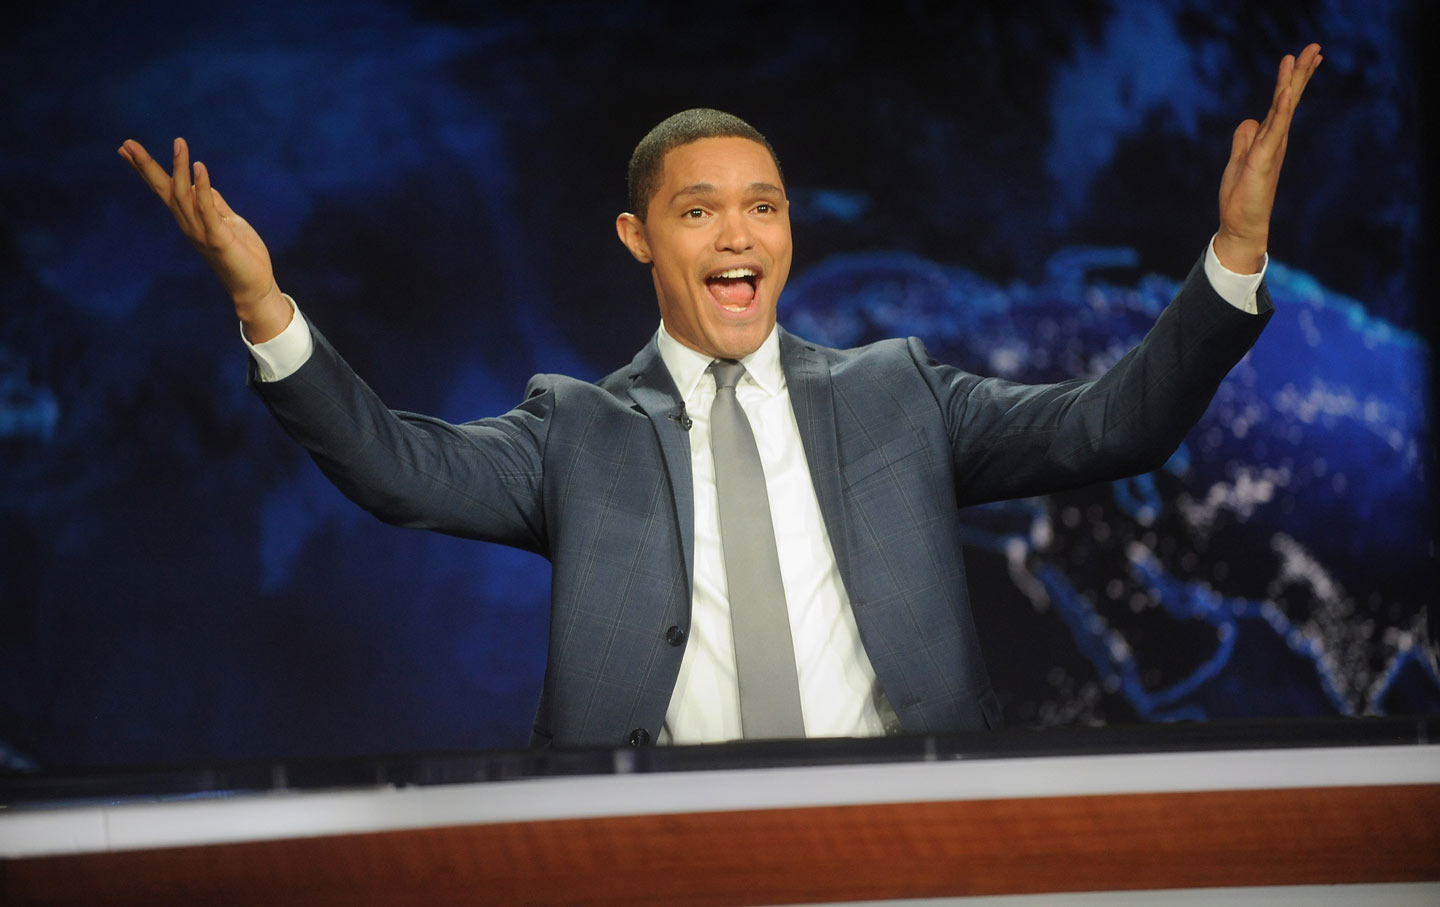 shows the daily show with trevor noah